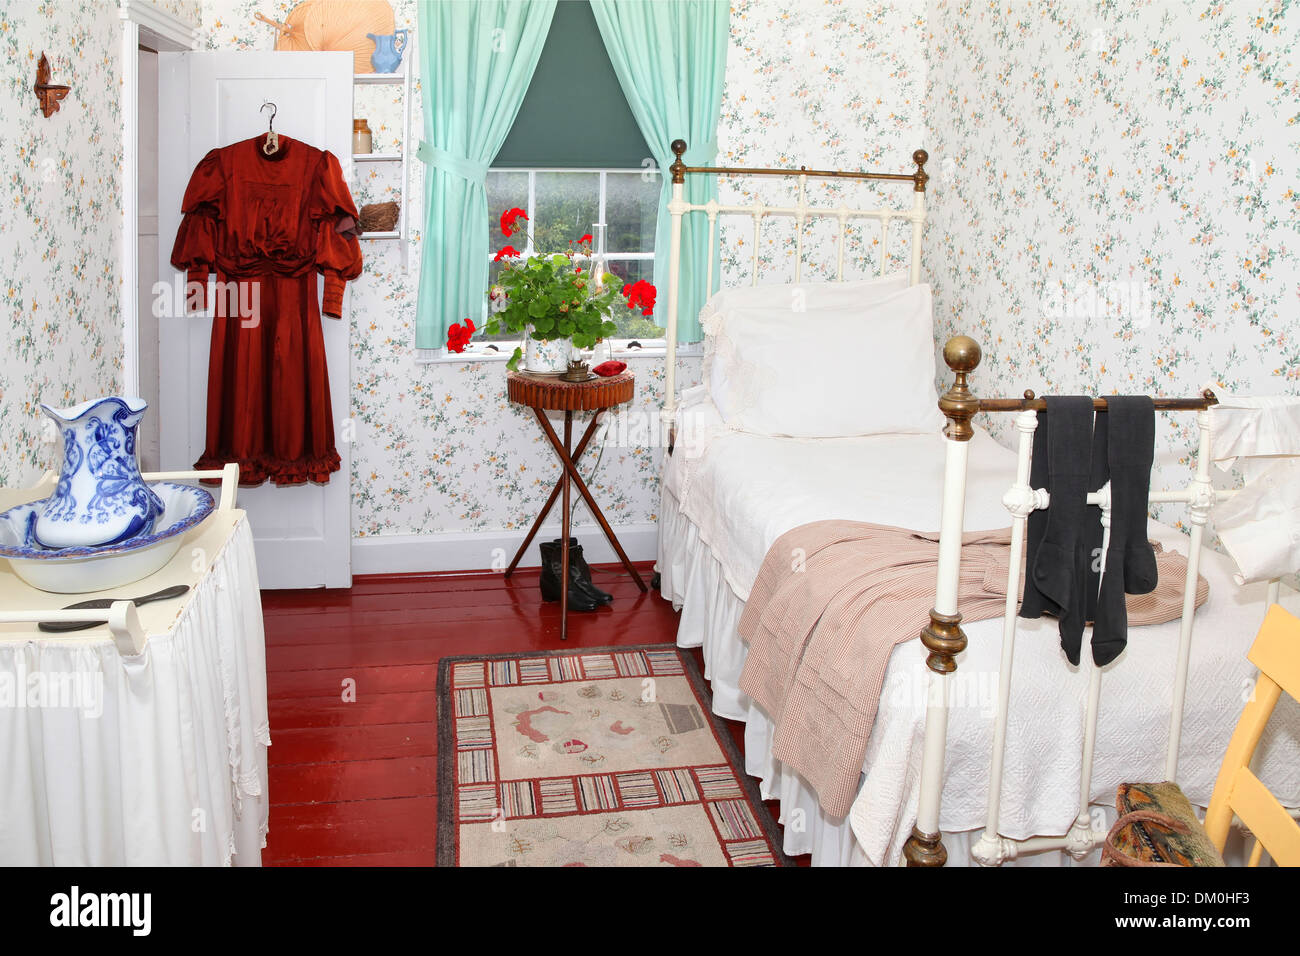 anne's bedroom in green gables house on prince edward island. made